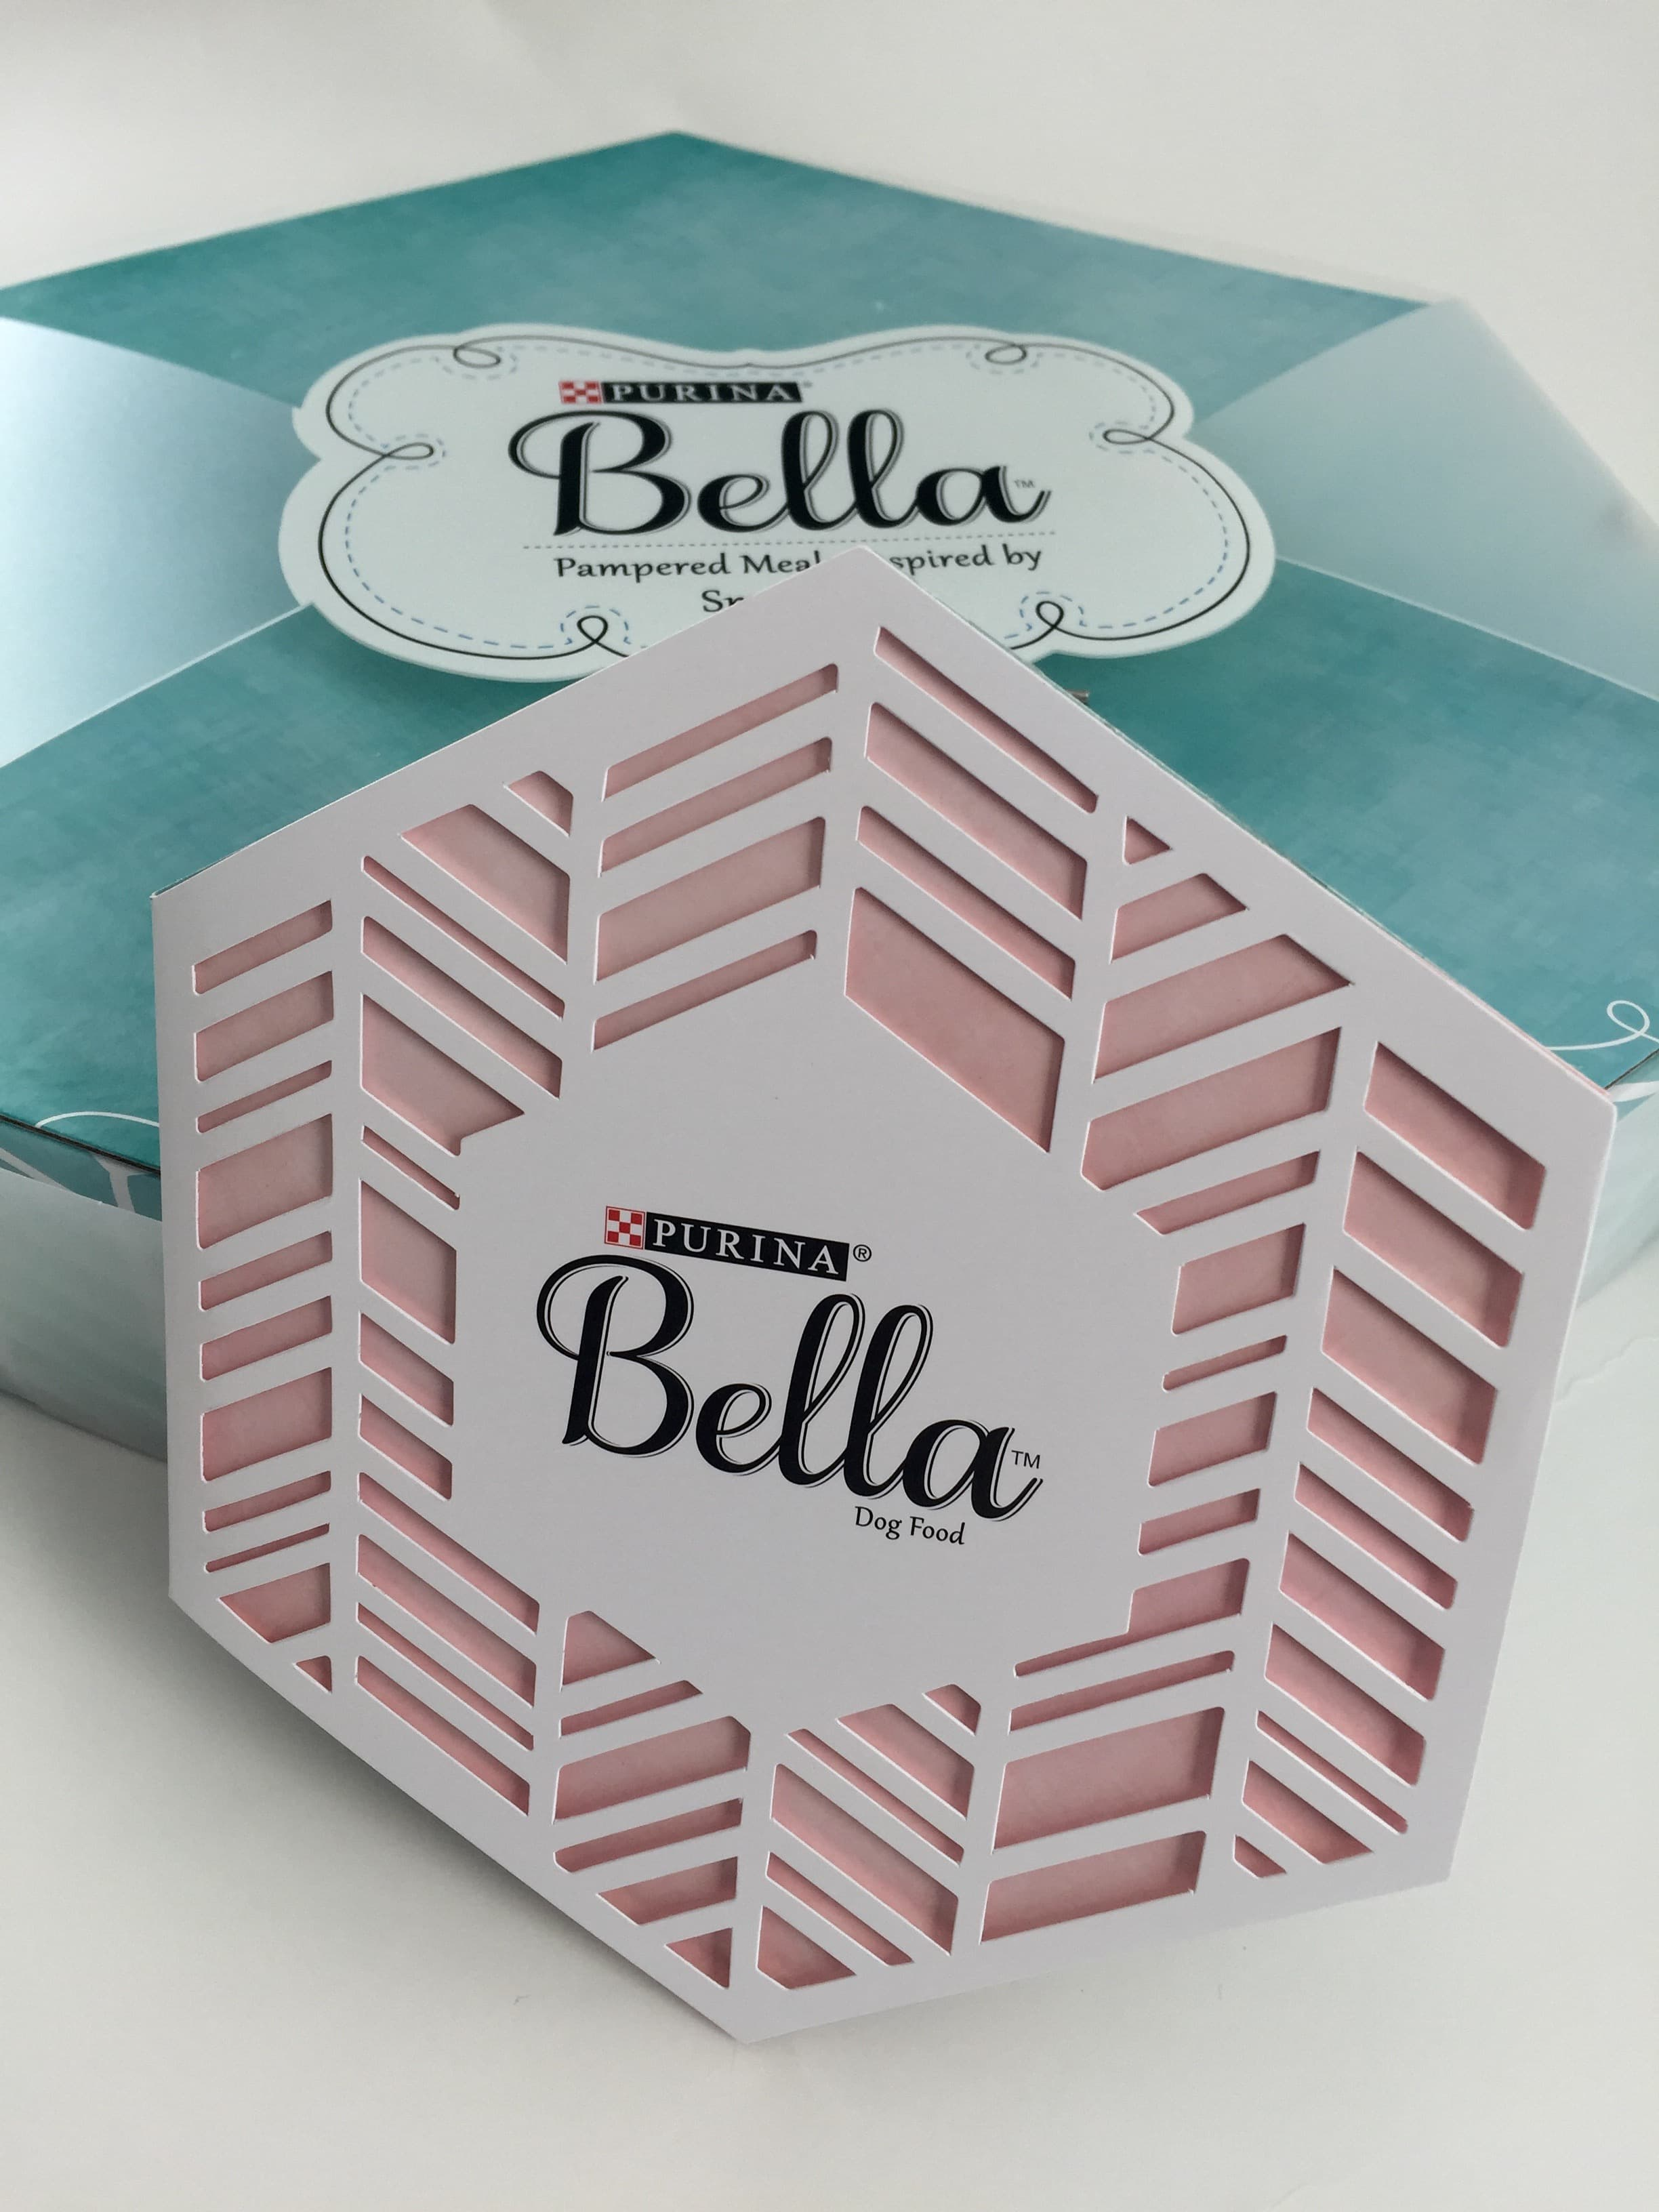 bella 4 – Copy – Copy – Copy